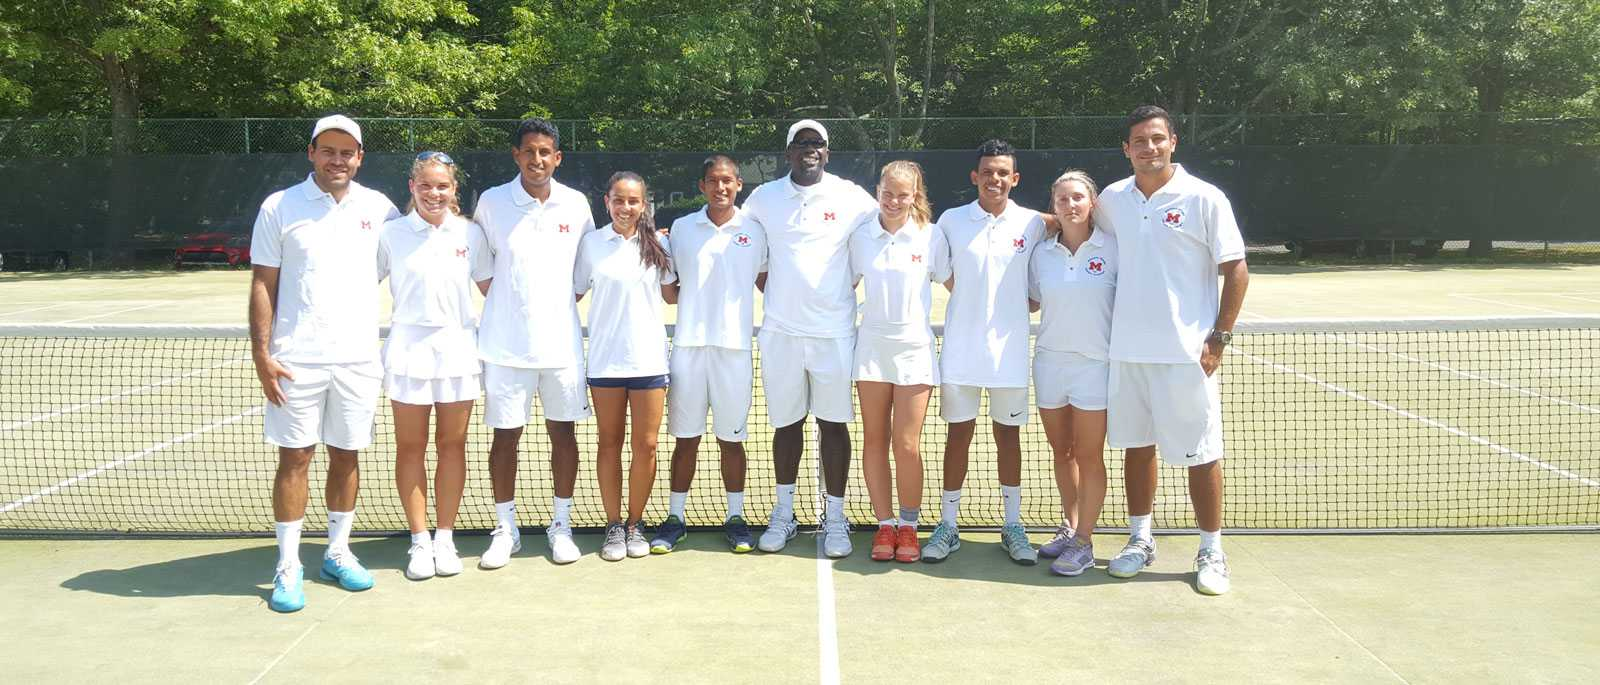 Moussa Drame Tennis team 2018